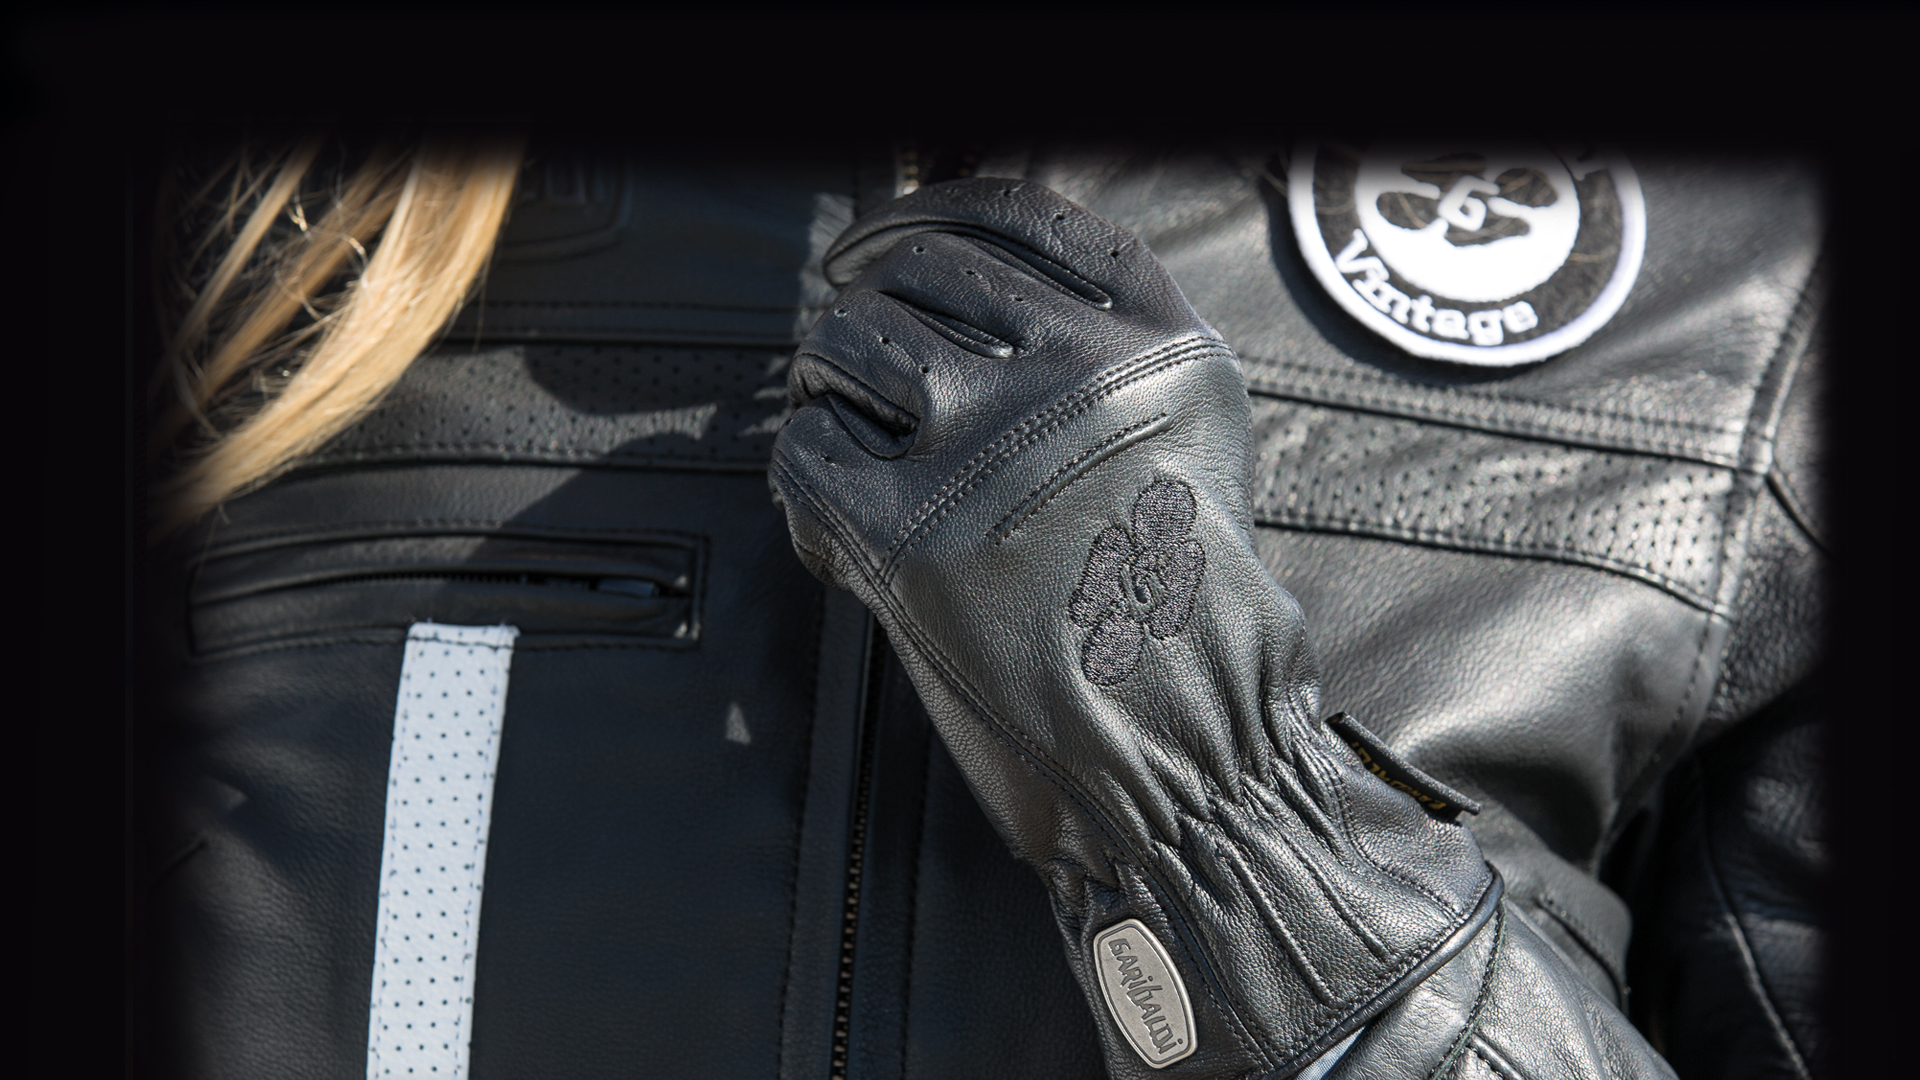 Vega Lady motorbike gloves